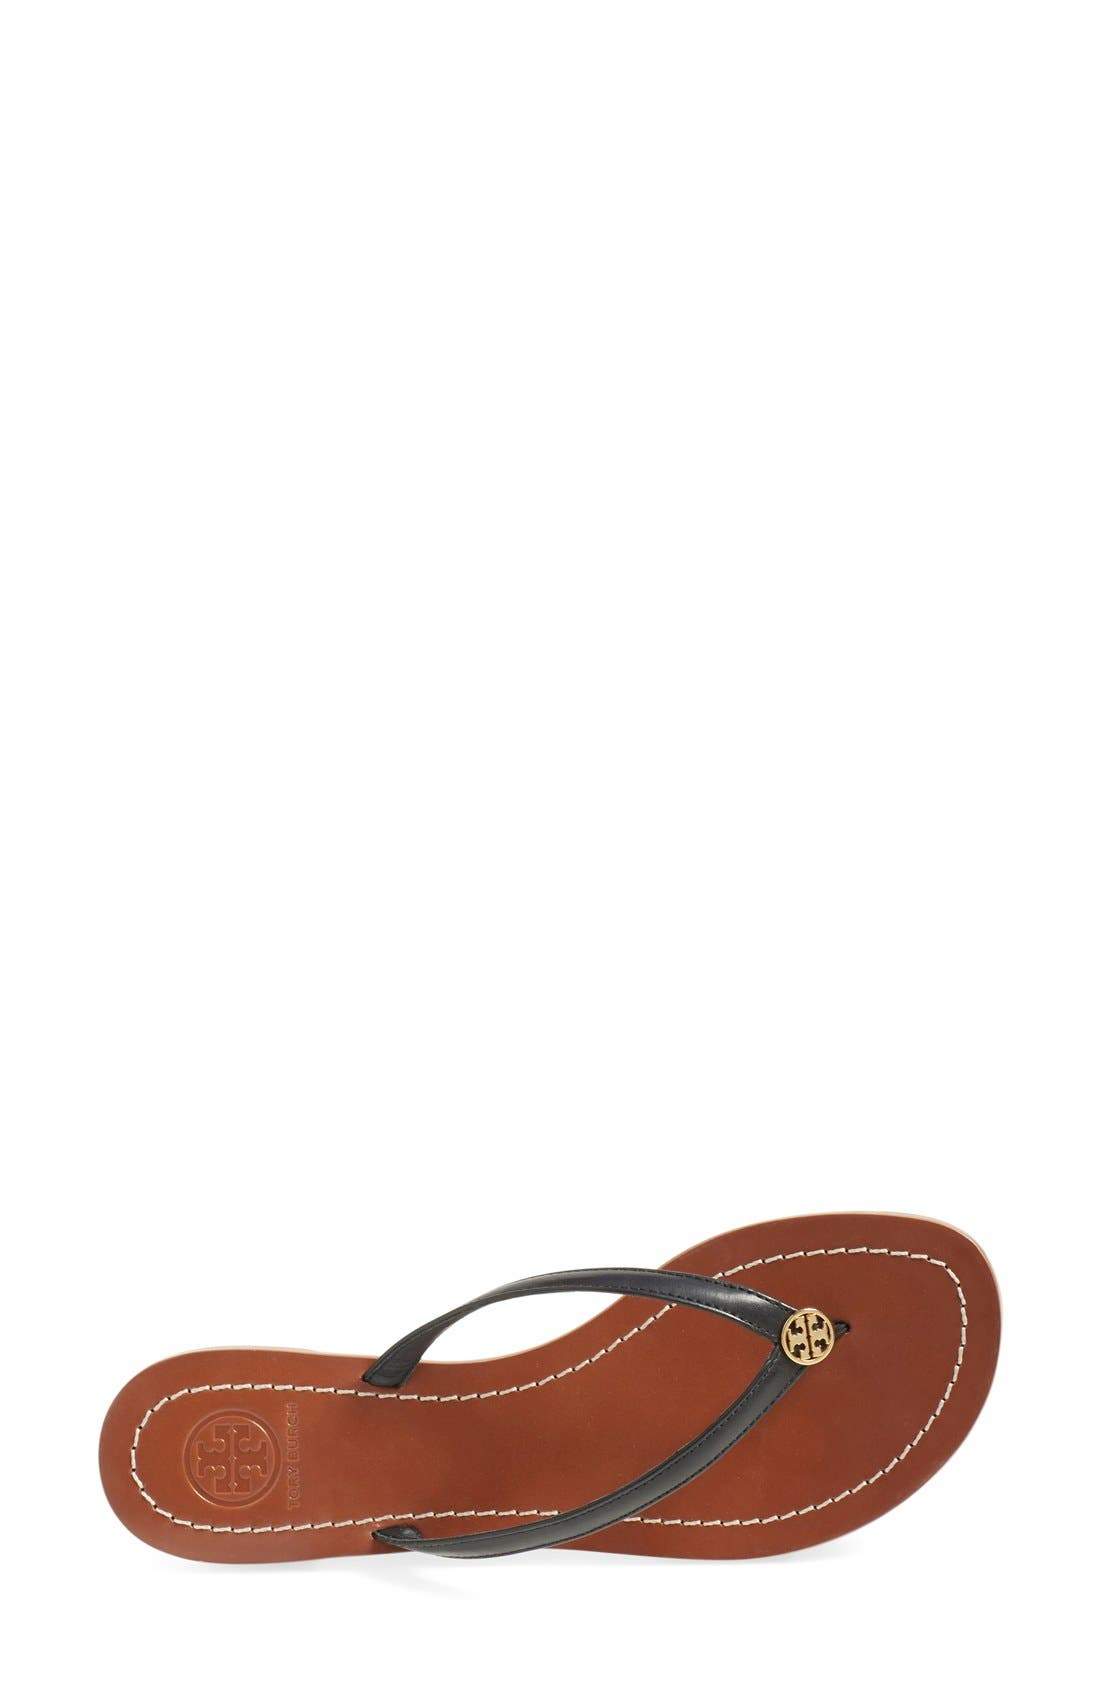 TORY BURCH, 'Terra' Flip Flop, Alternate thumbnail 3, color, 001